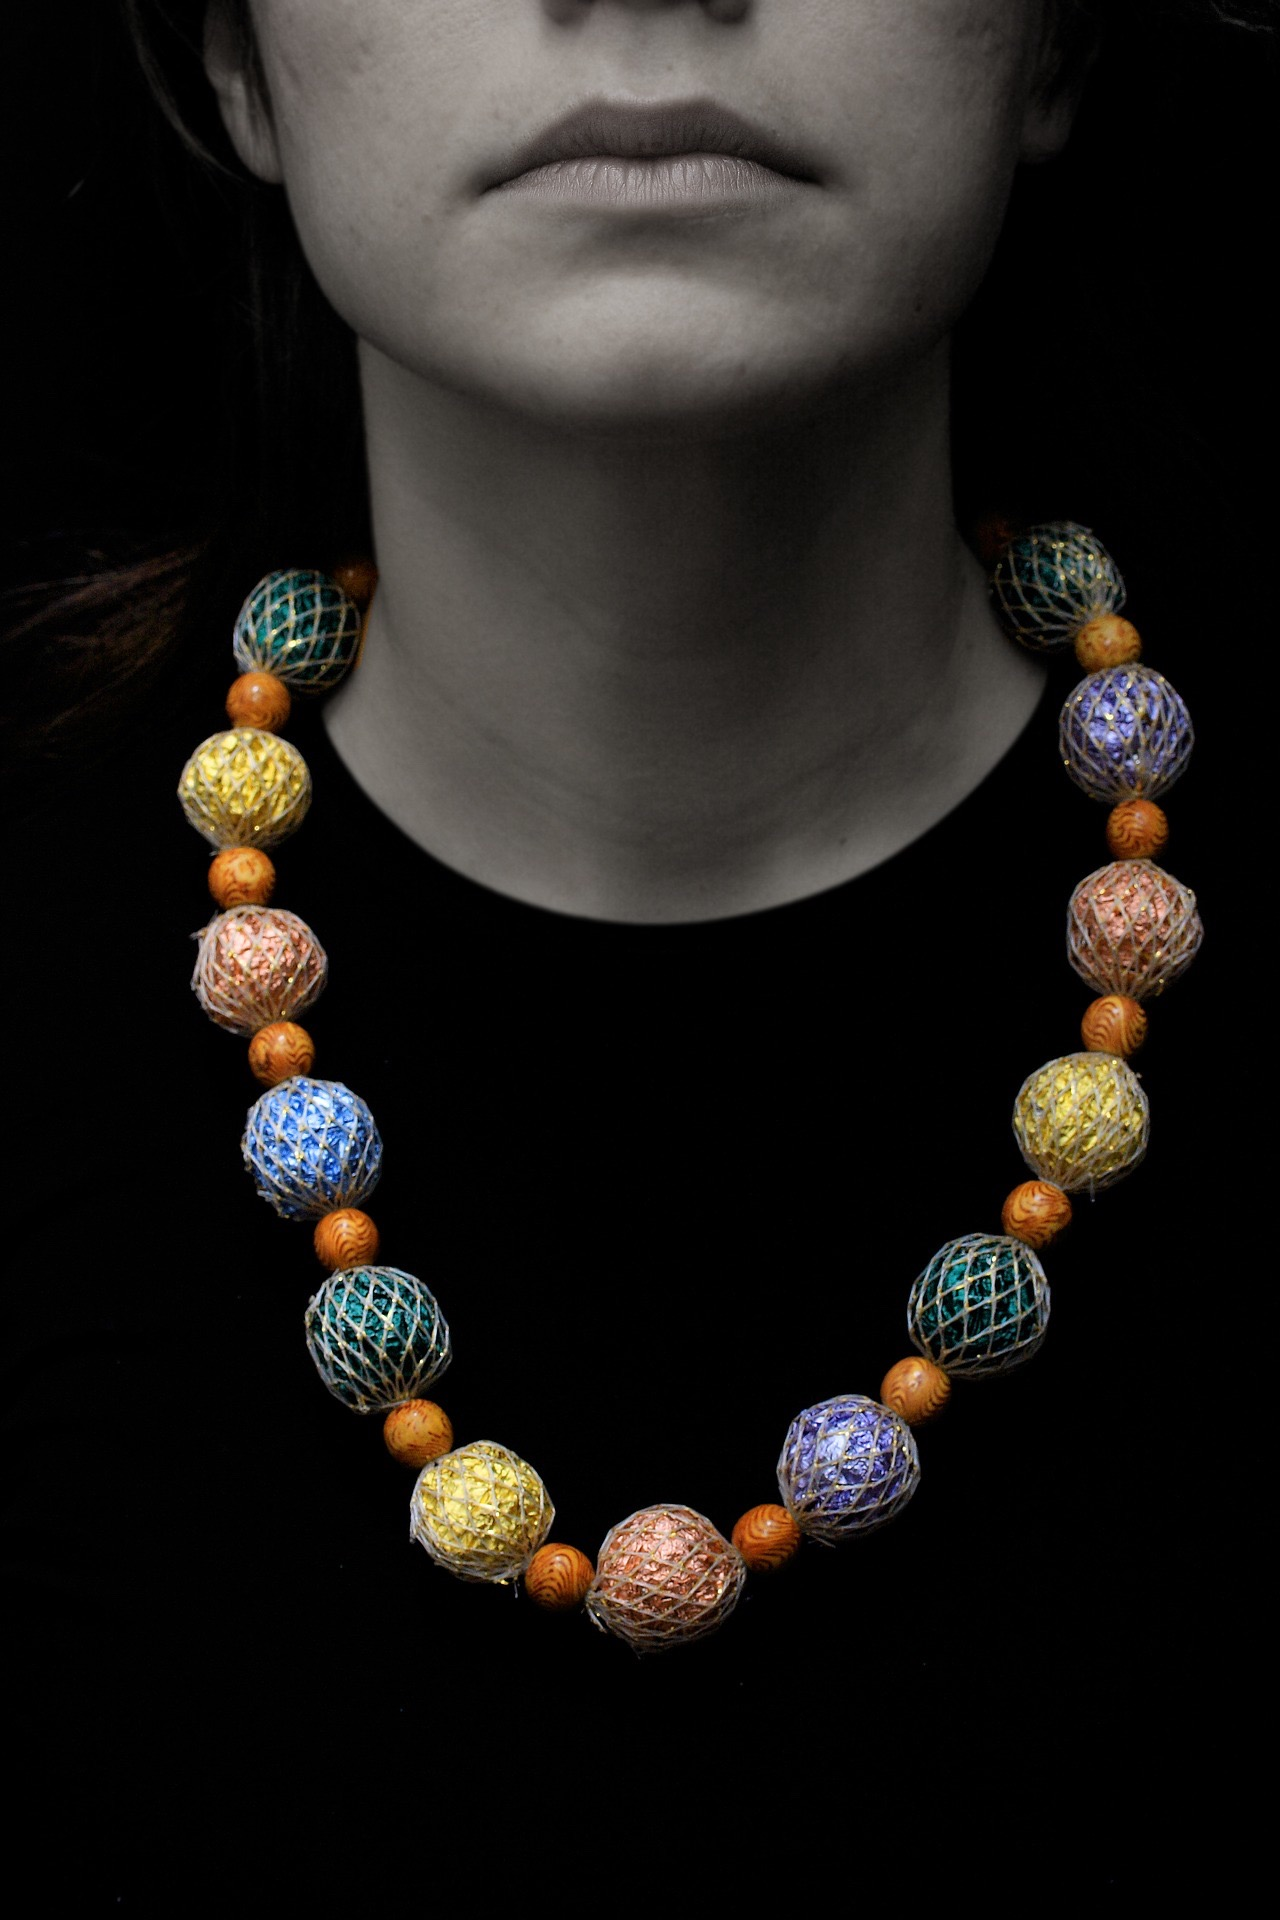 lady in a colourful necklace